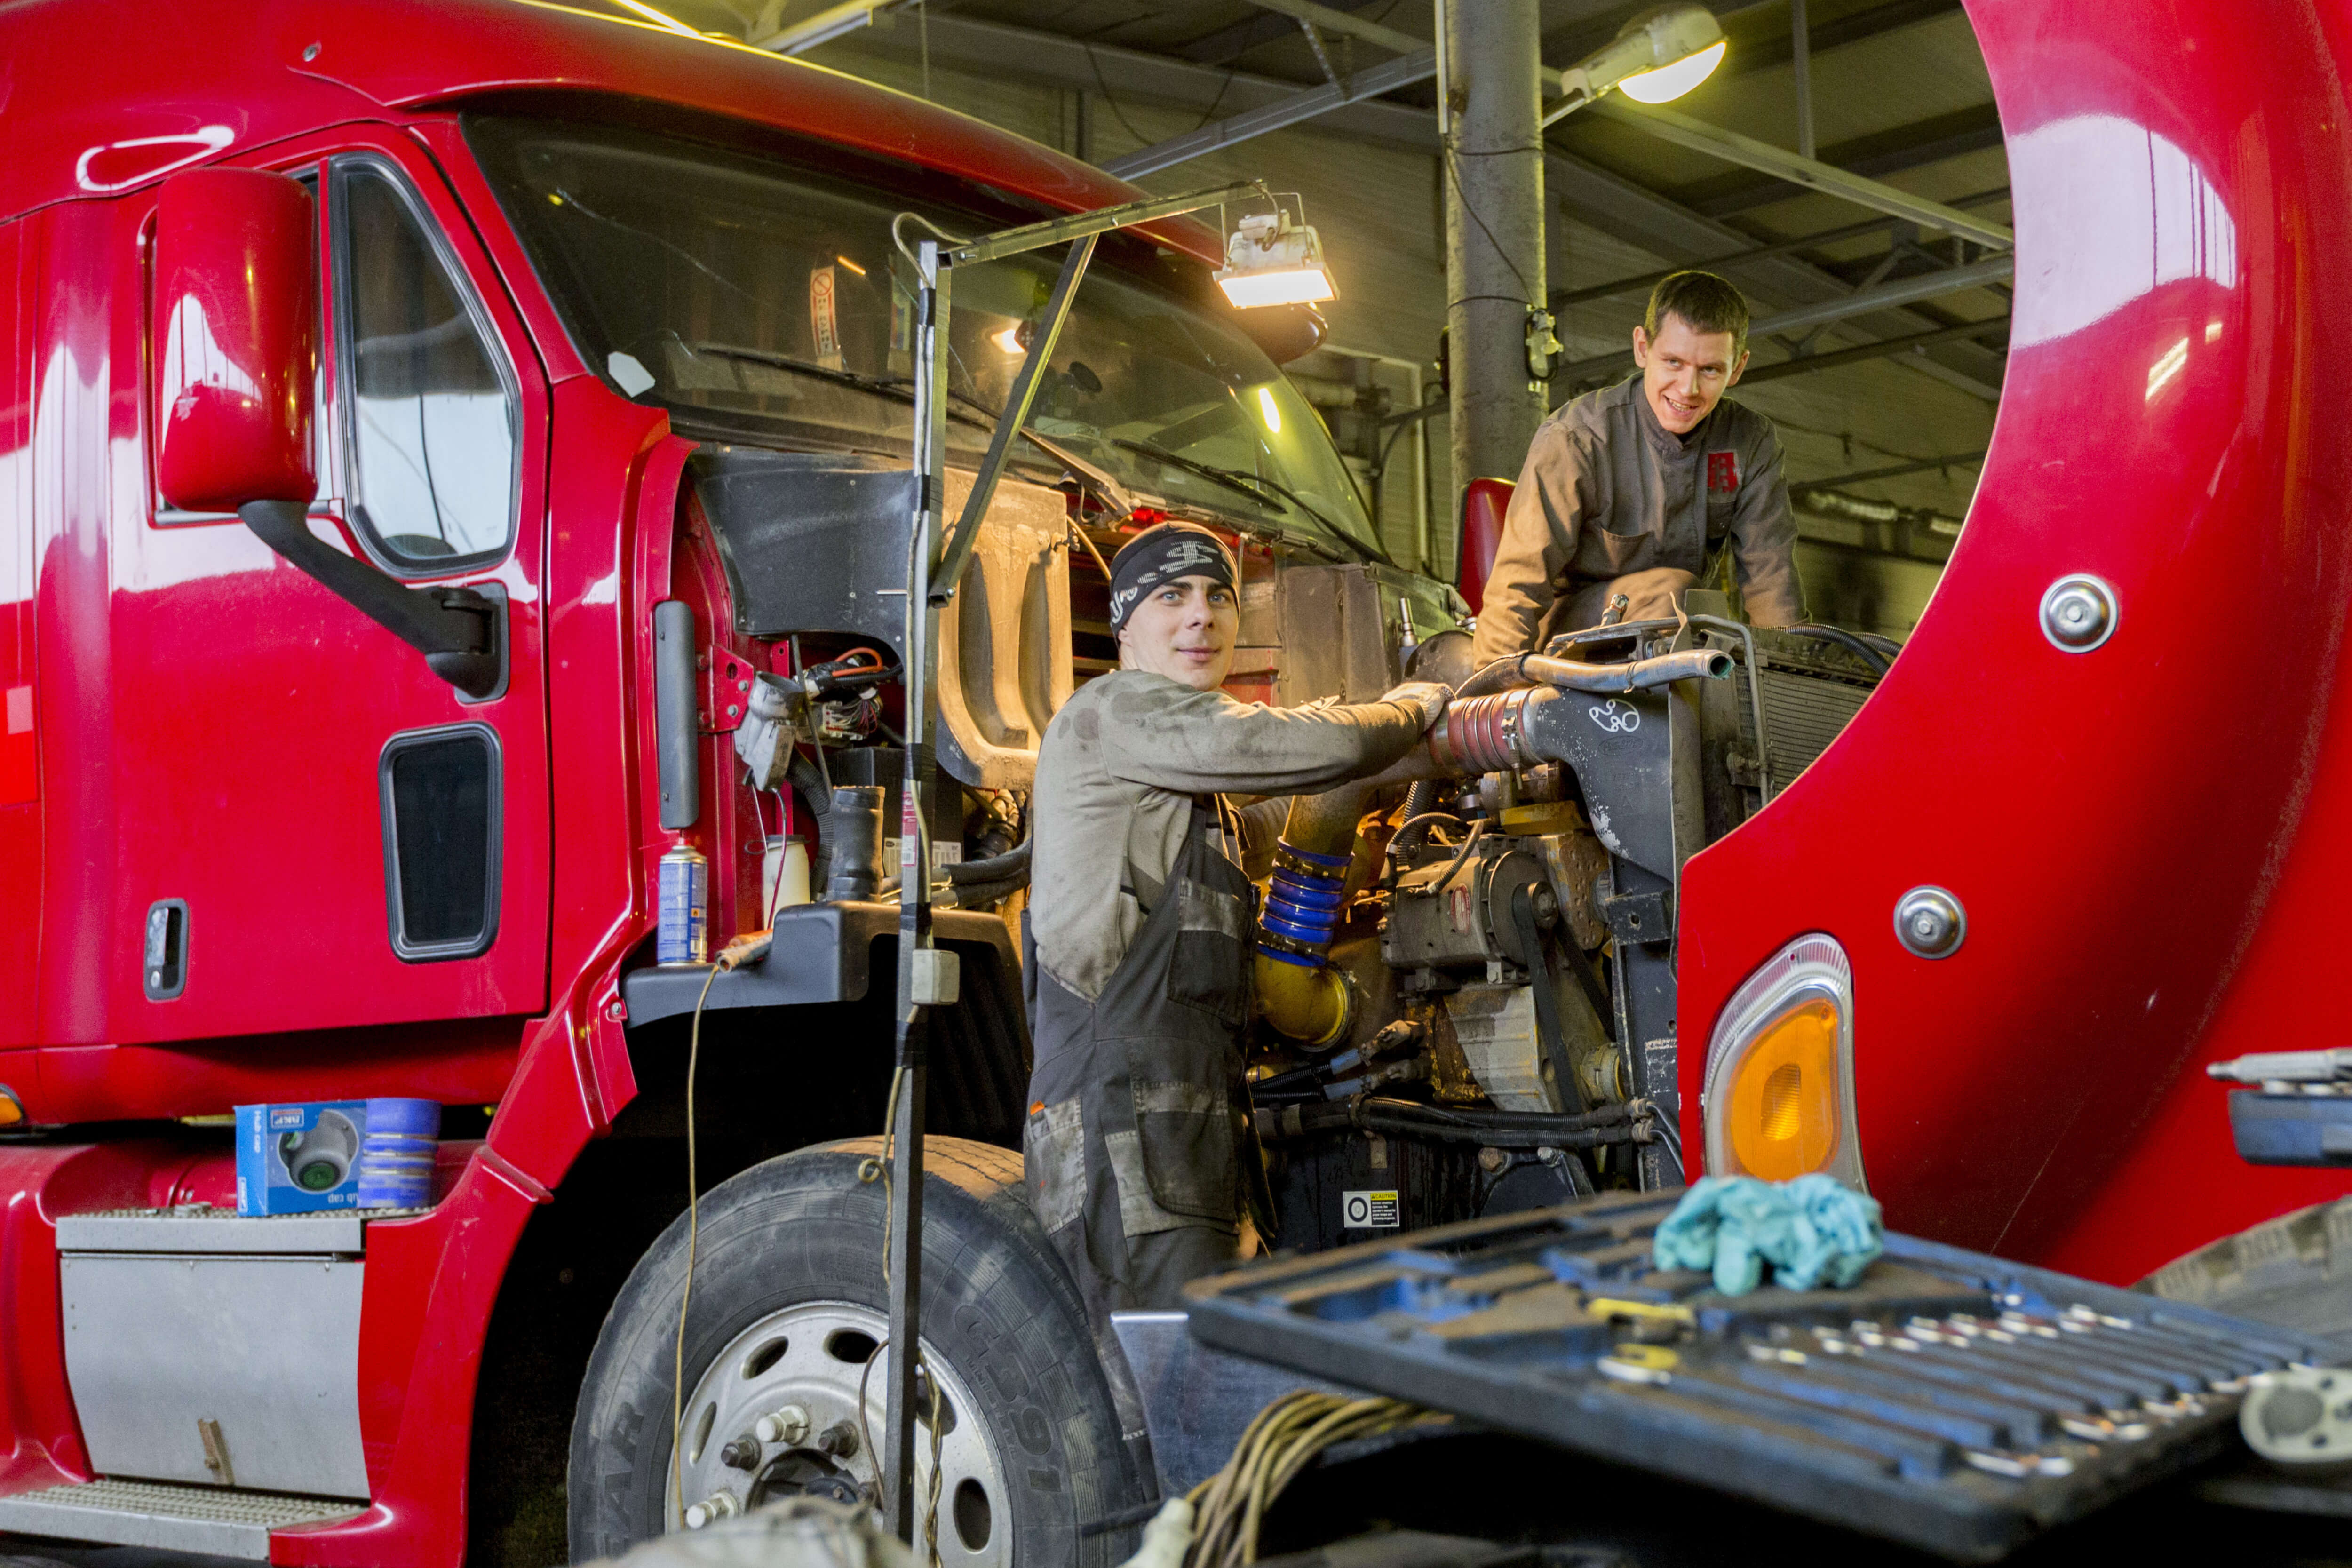 Scania's team is exploring how digital twins can help them. Source: Shutterstock